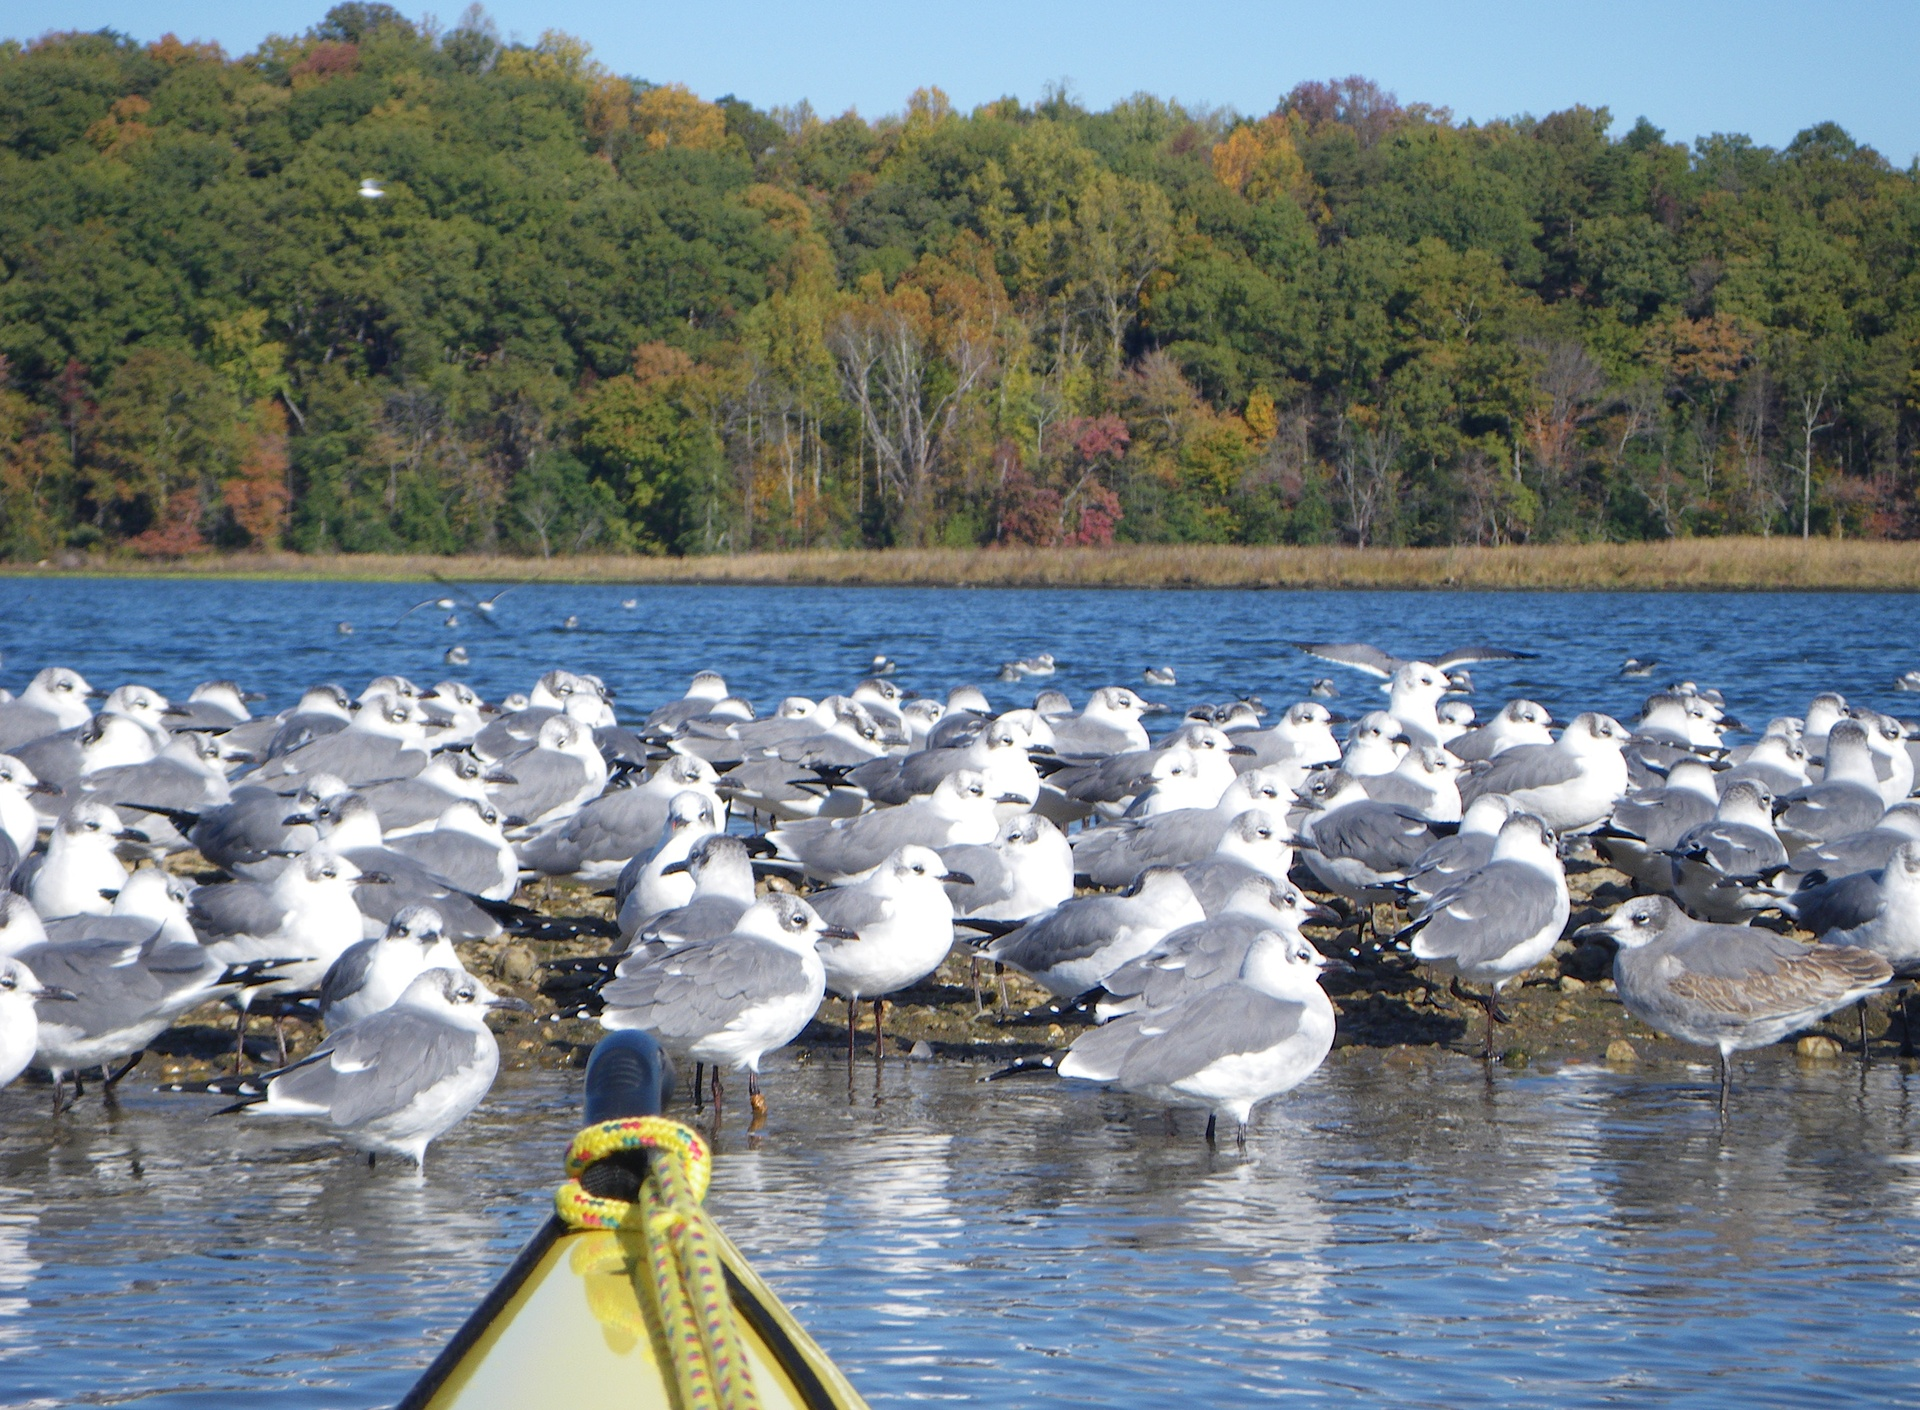 Terns on Aquia Creek, Virginia